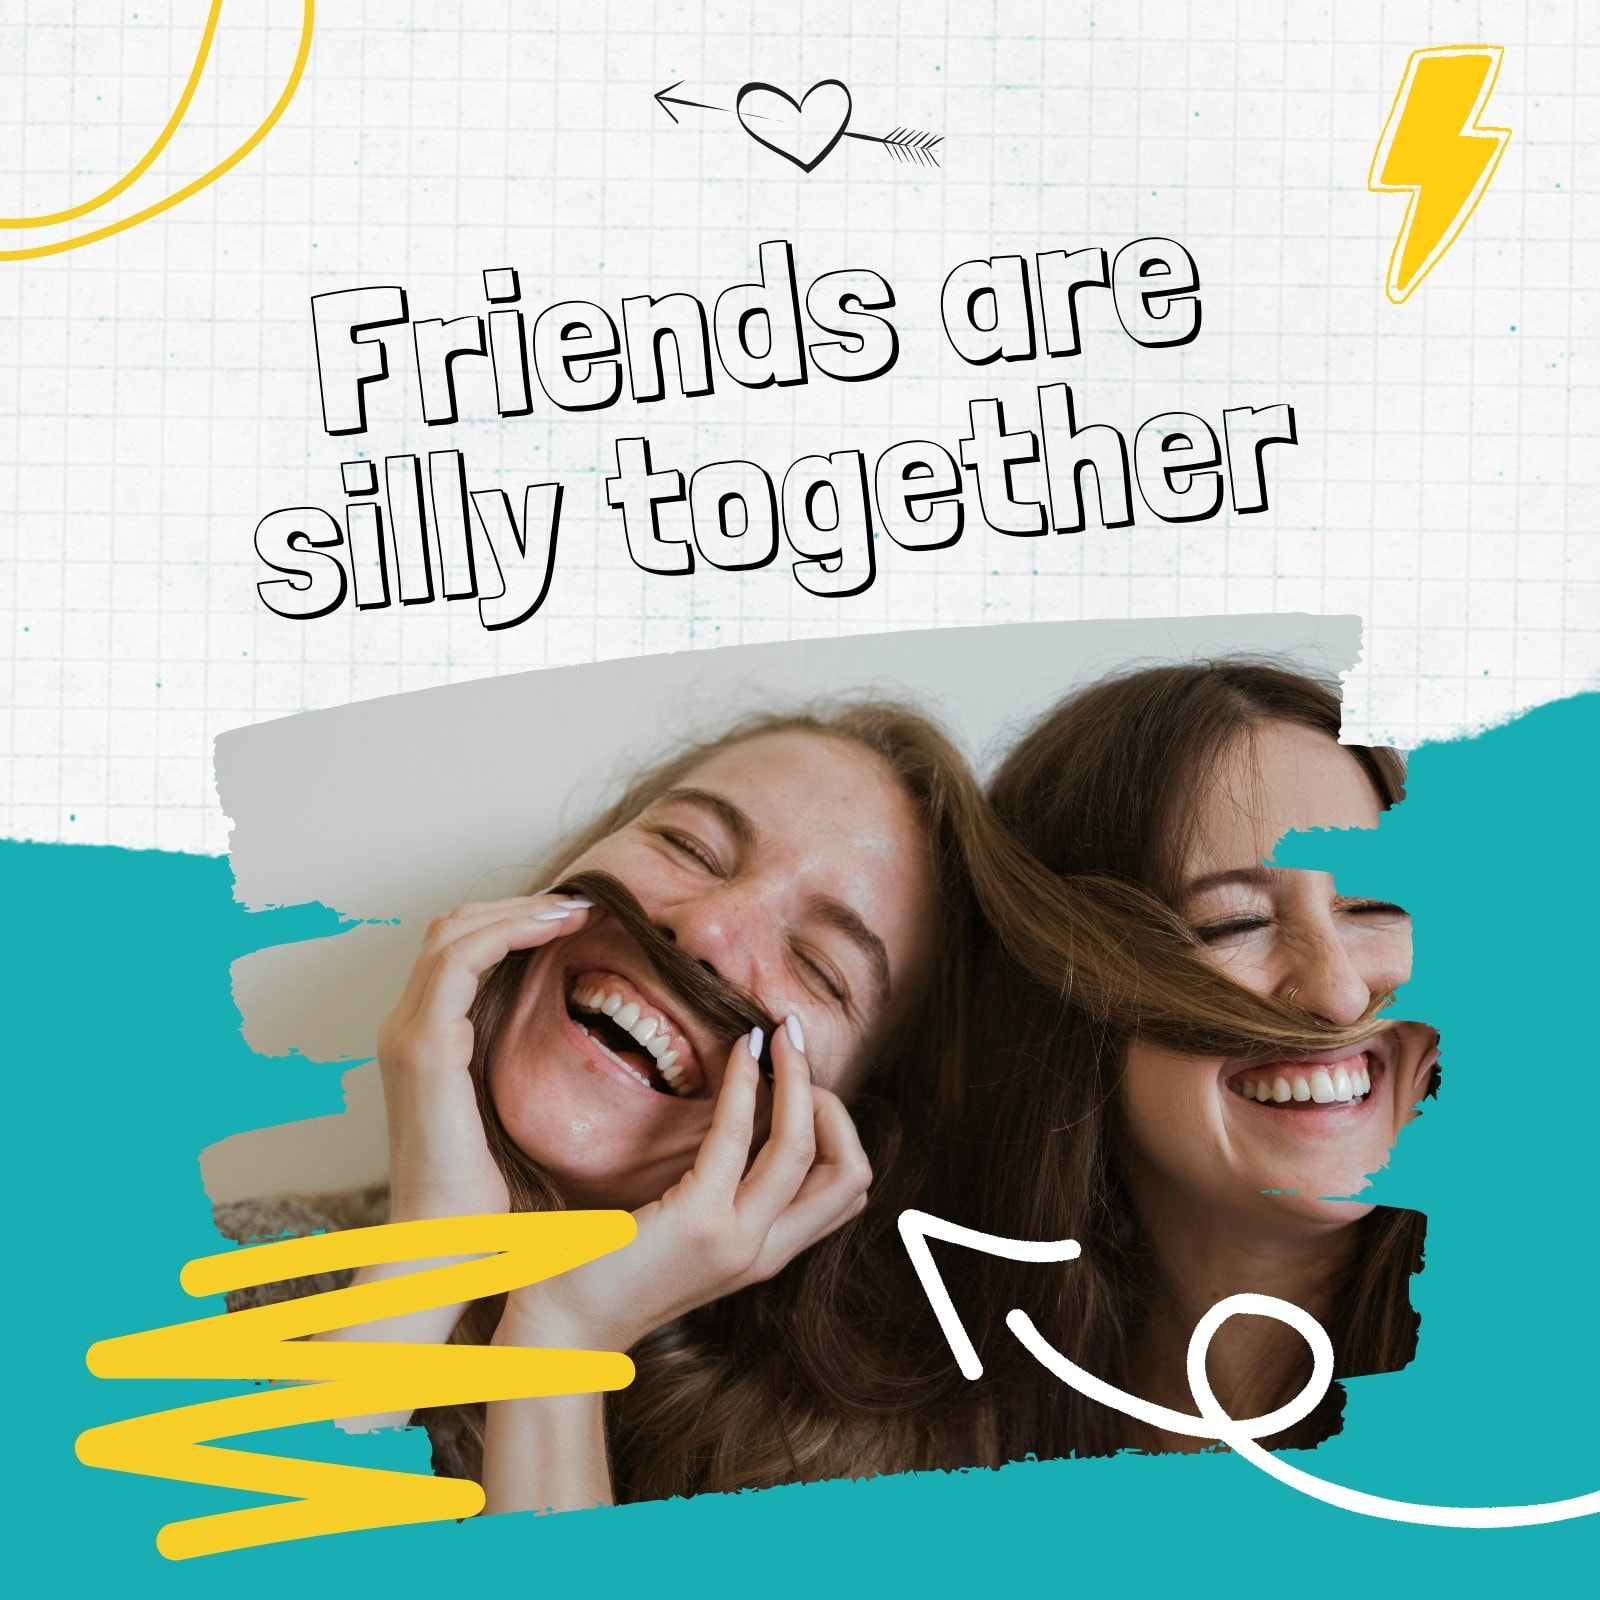 Teal and Yellow Funny Friends Animated Social Media Graphic